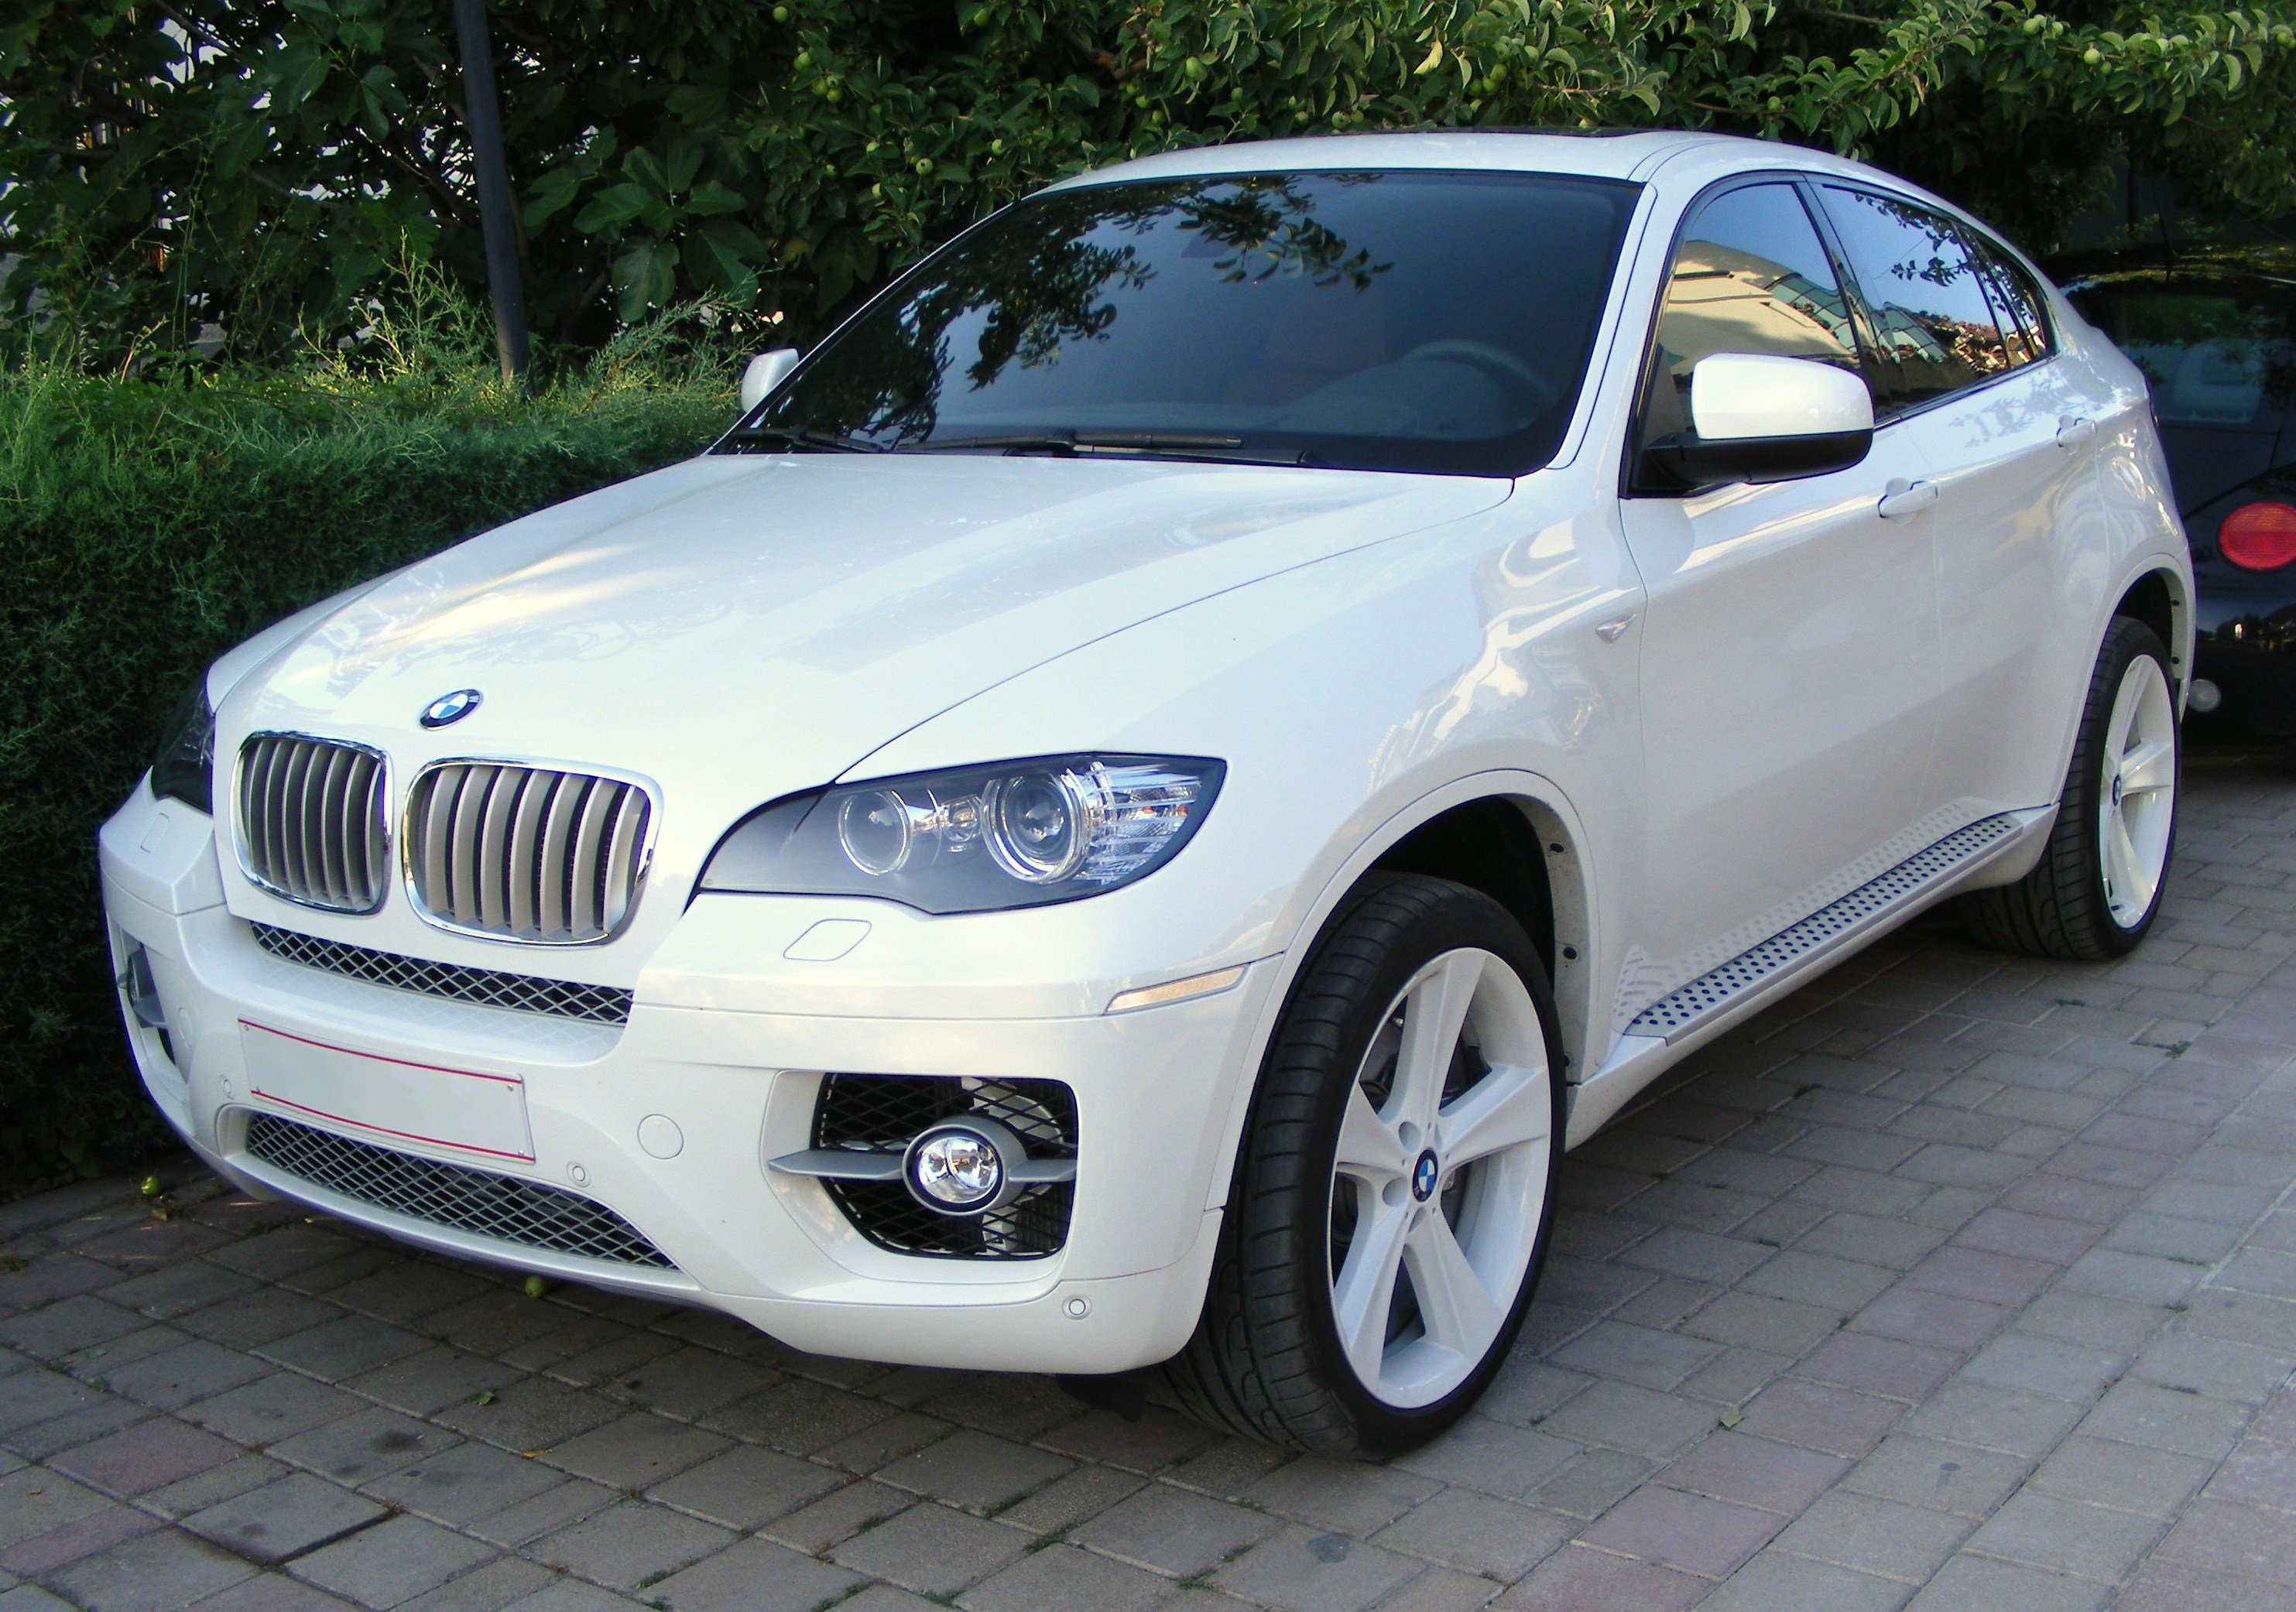 bmw x6 images #10